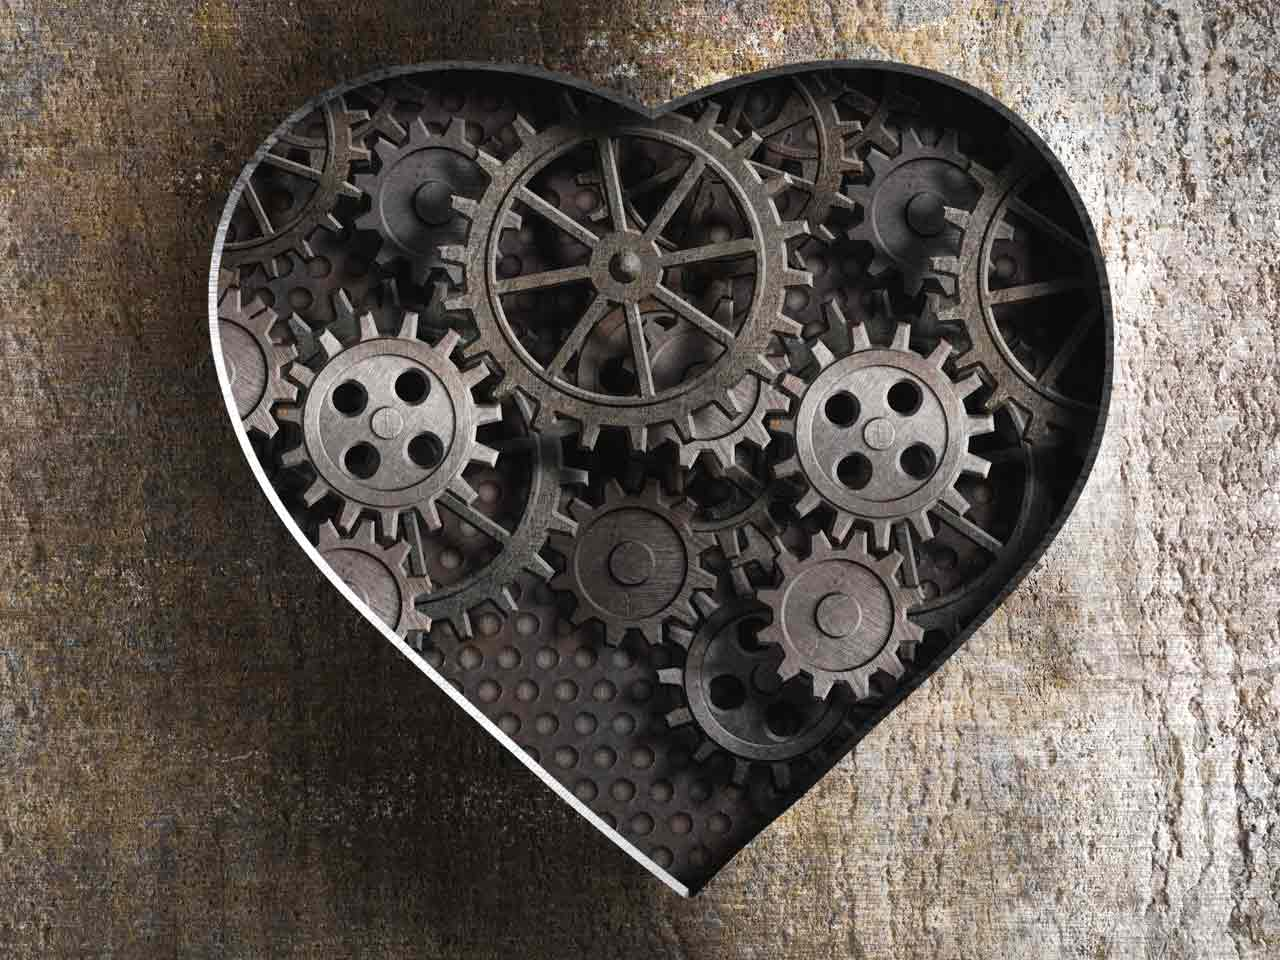 Ageing cogs in a heart